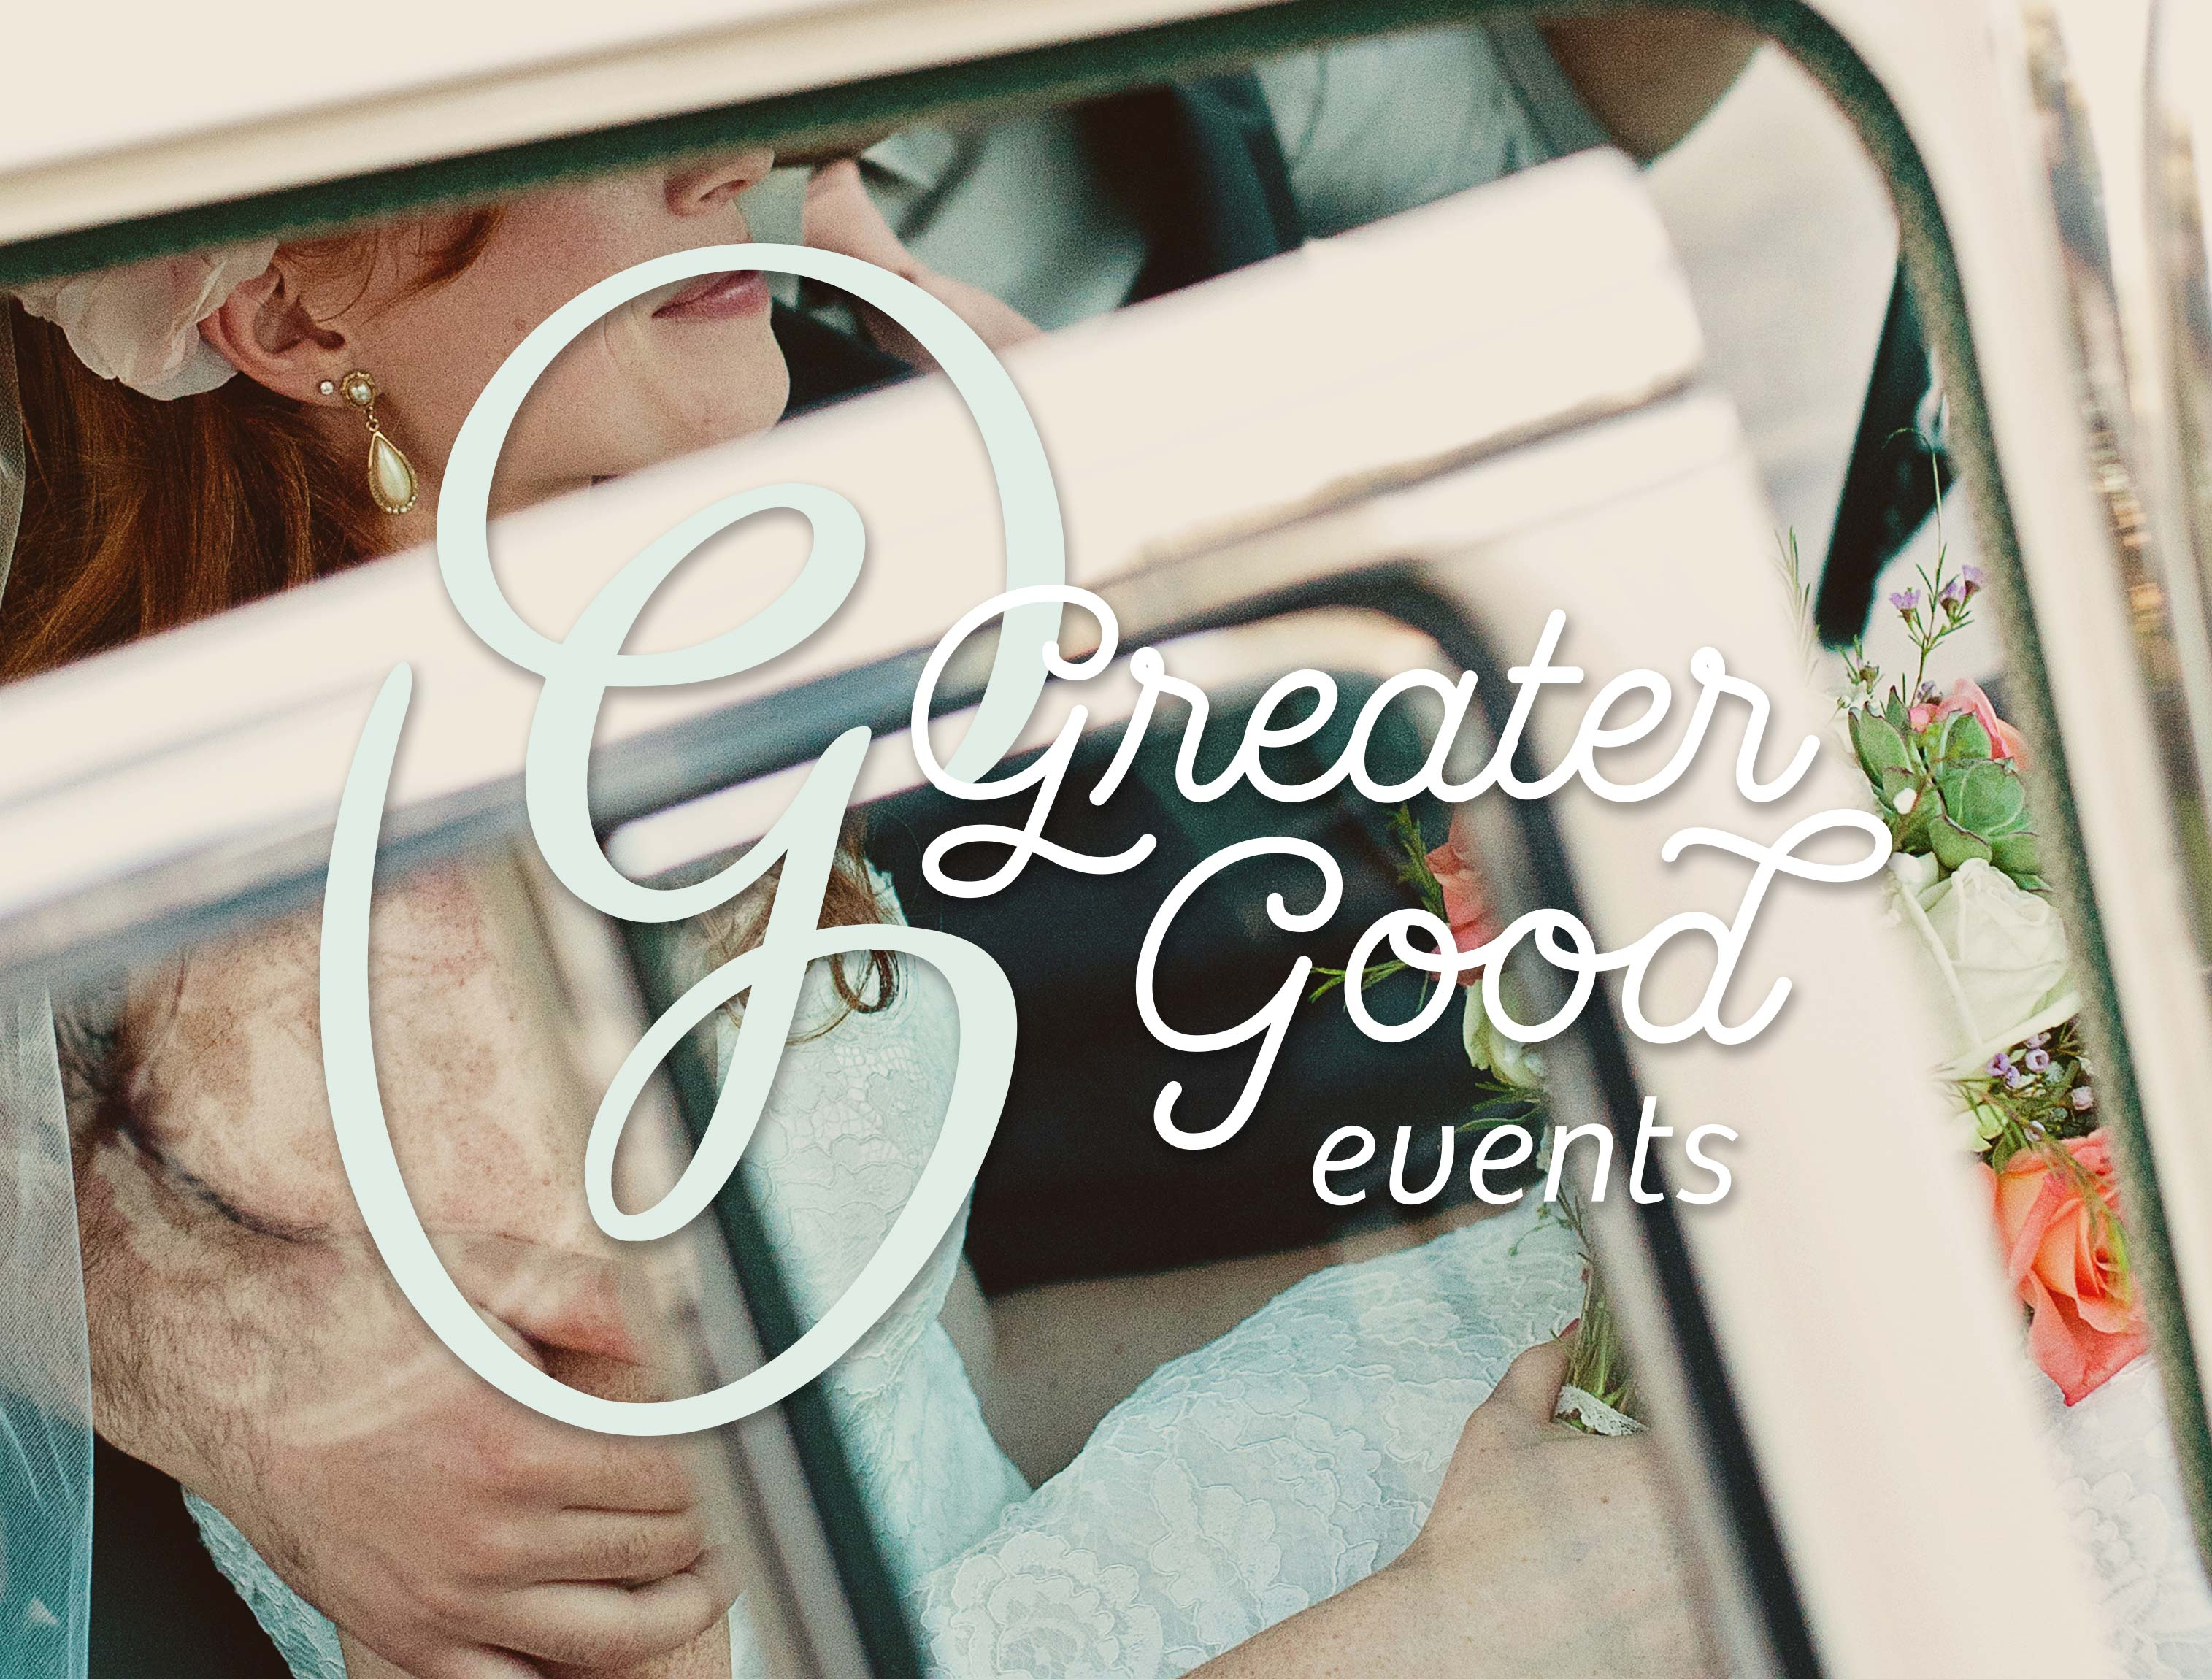 Greater Good Events logo over a photo of a bride getting out of a car.